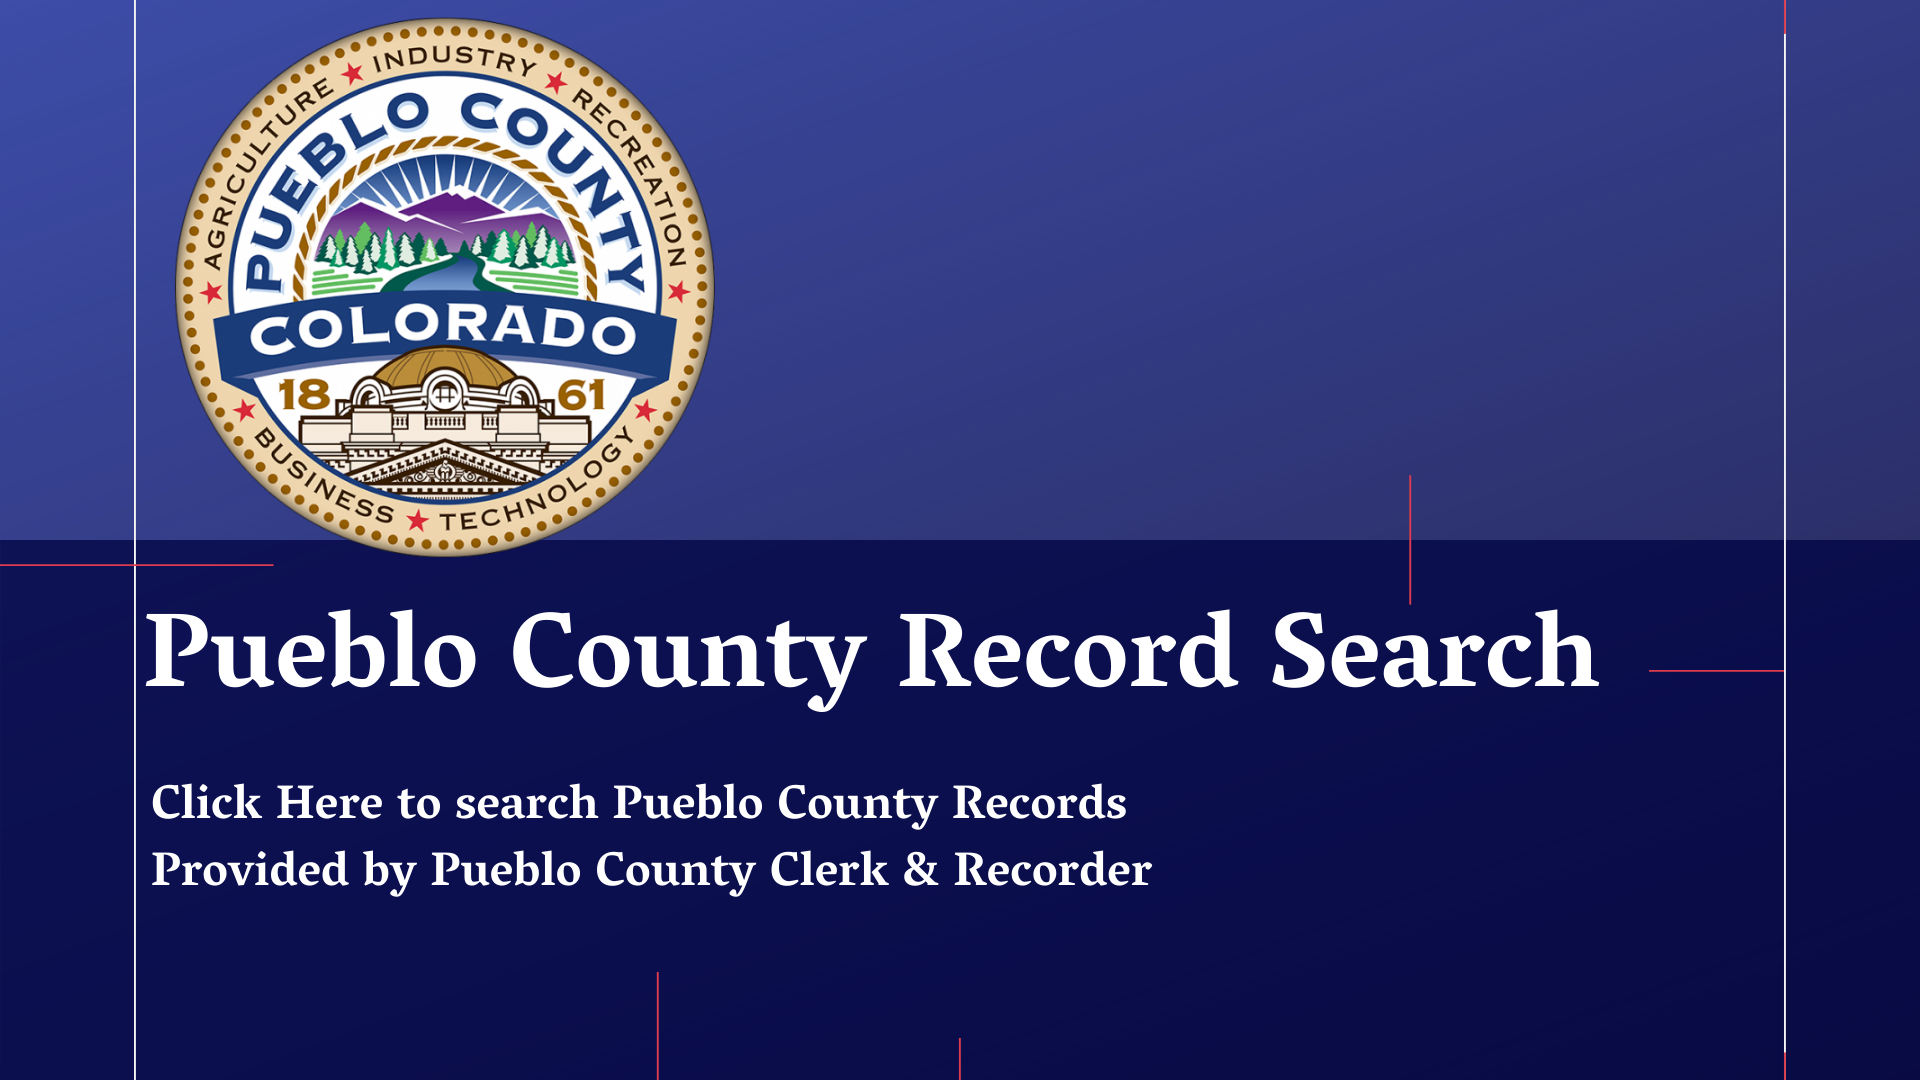 Pueblo county record search